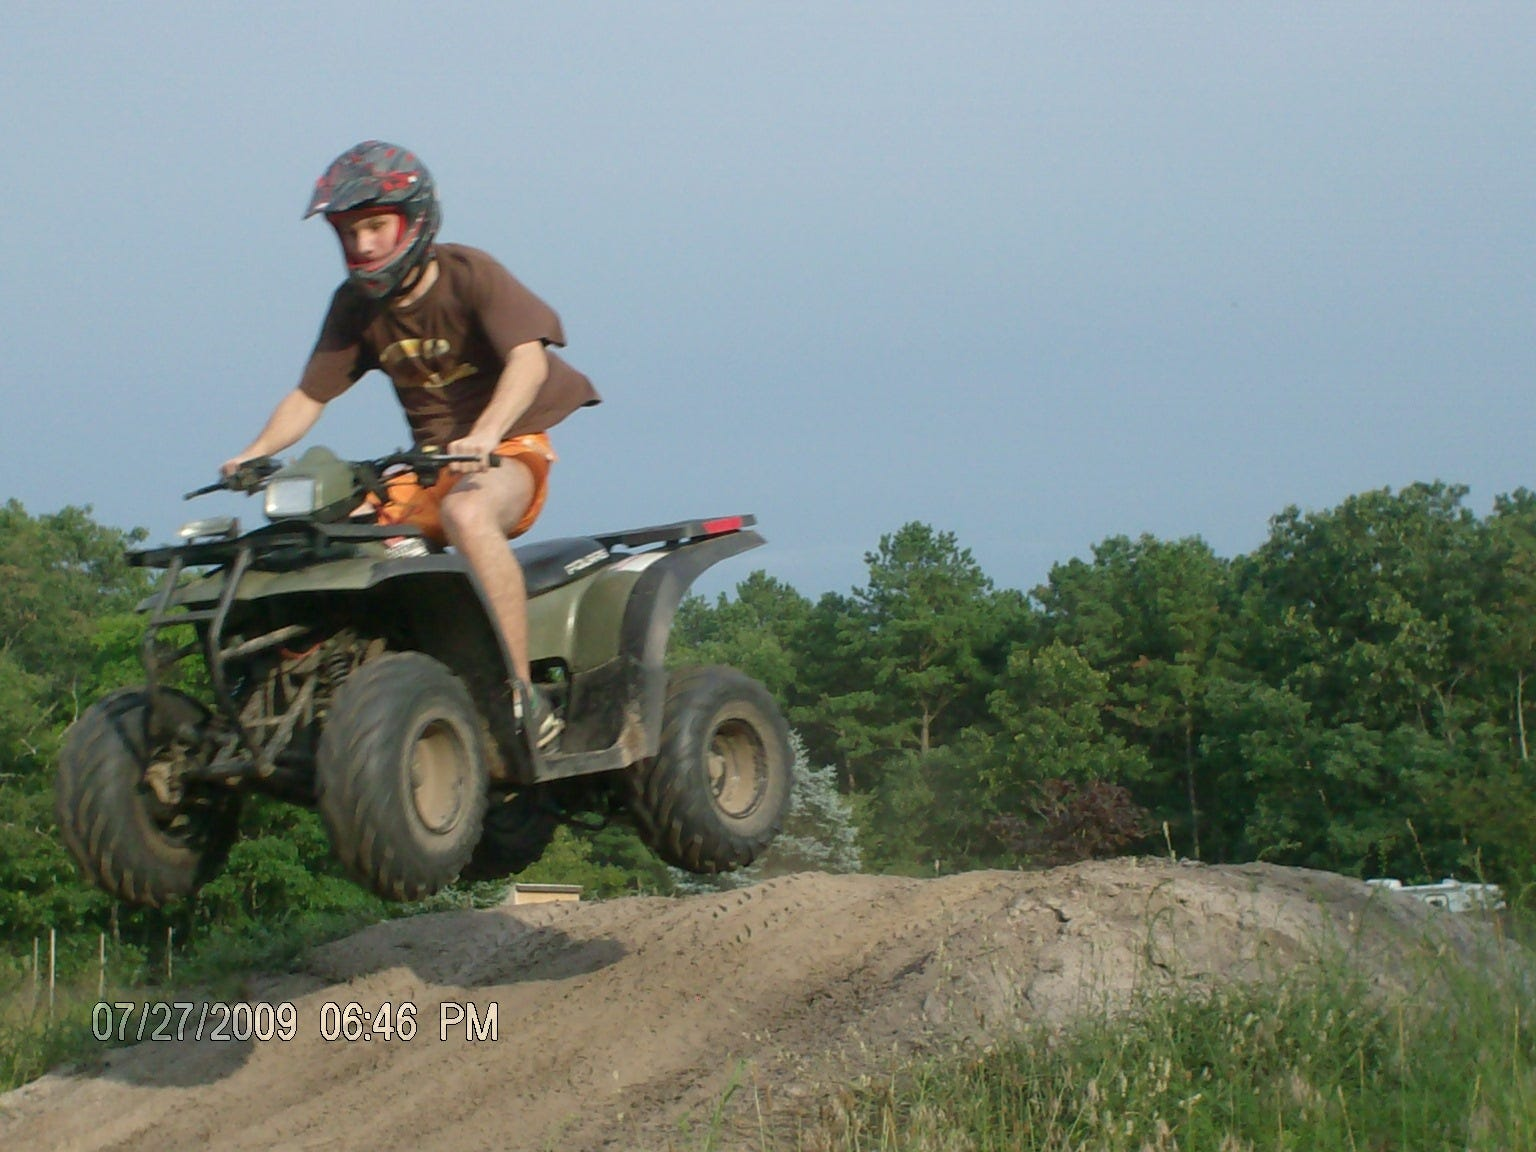 Michael Riley, shown here riding an all-terrain vehicle on a family vacation, was well enough to stay home by himself while his parents worked. After experiencing violent outbursts, the 26-year-old was prescribed multiple medications that left him unable to feed or bathe himself during a brief stay at home in 2017. After much intervention by his parents, he was eventually stabilized with fewer medications and returned home to his family, after more than a year at Ancora Psychiatric Hospital.